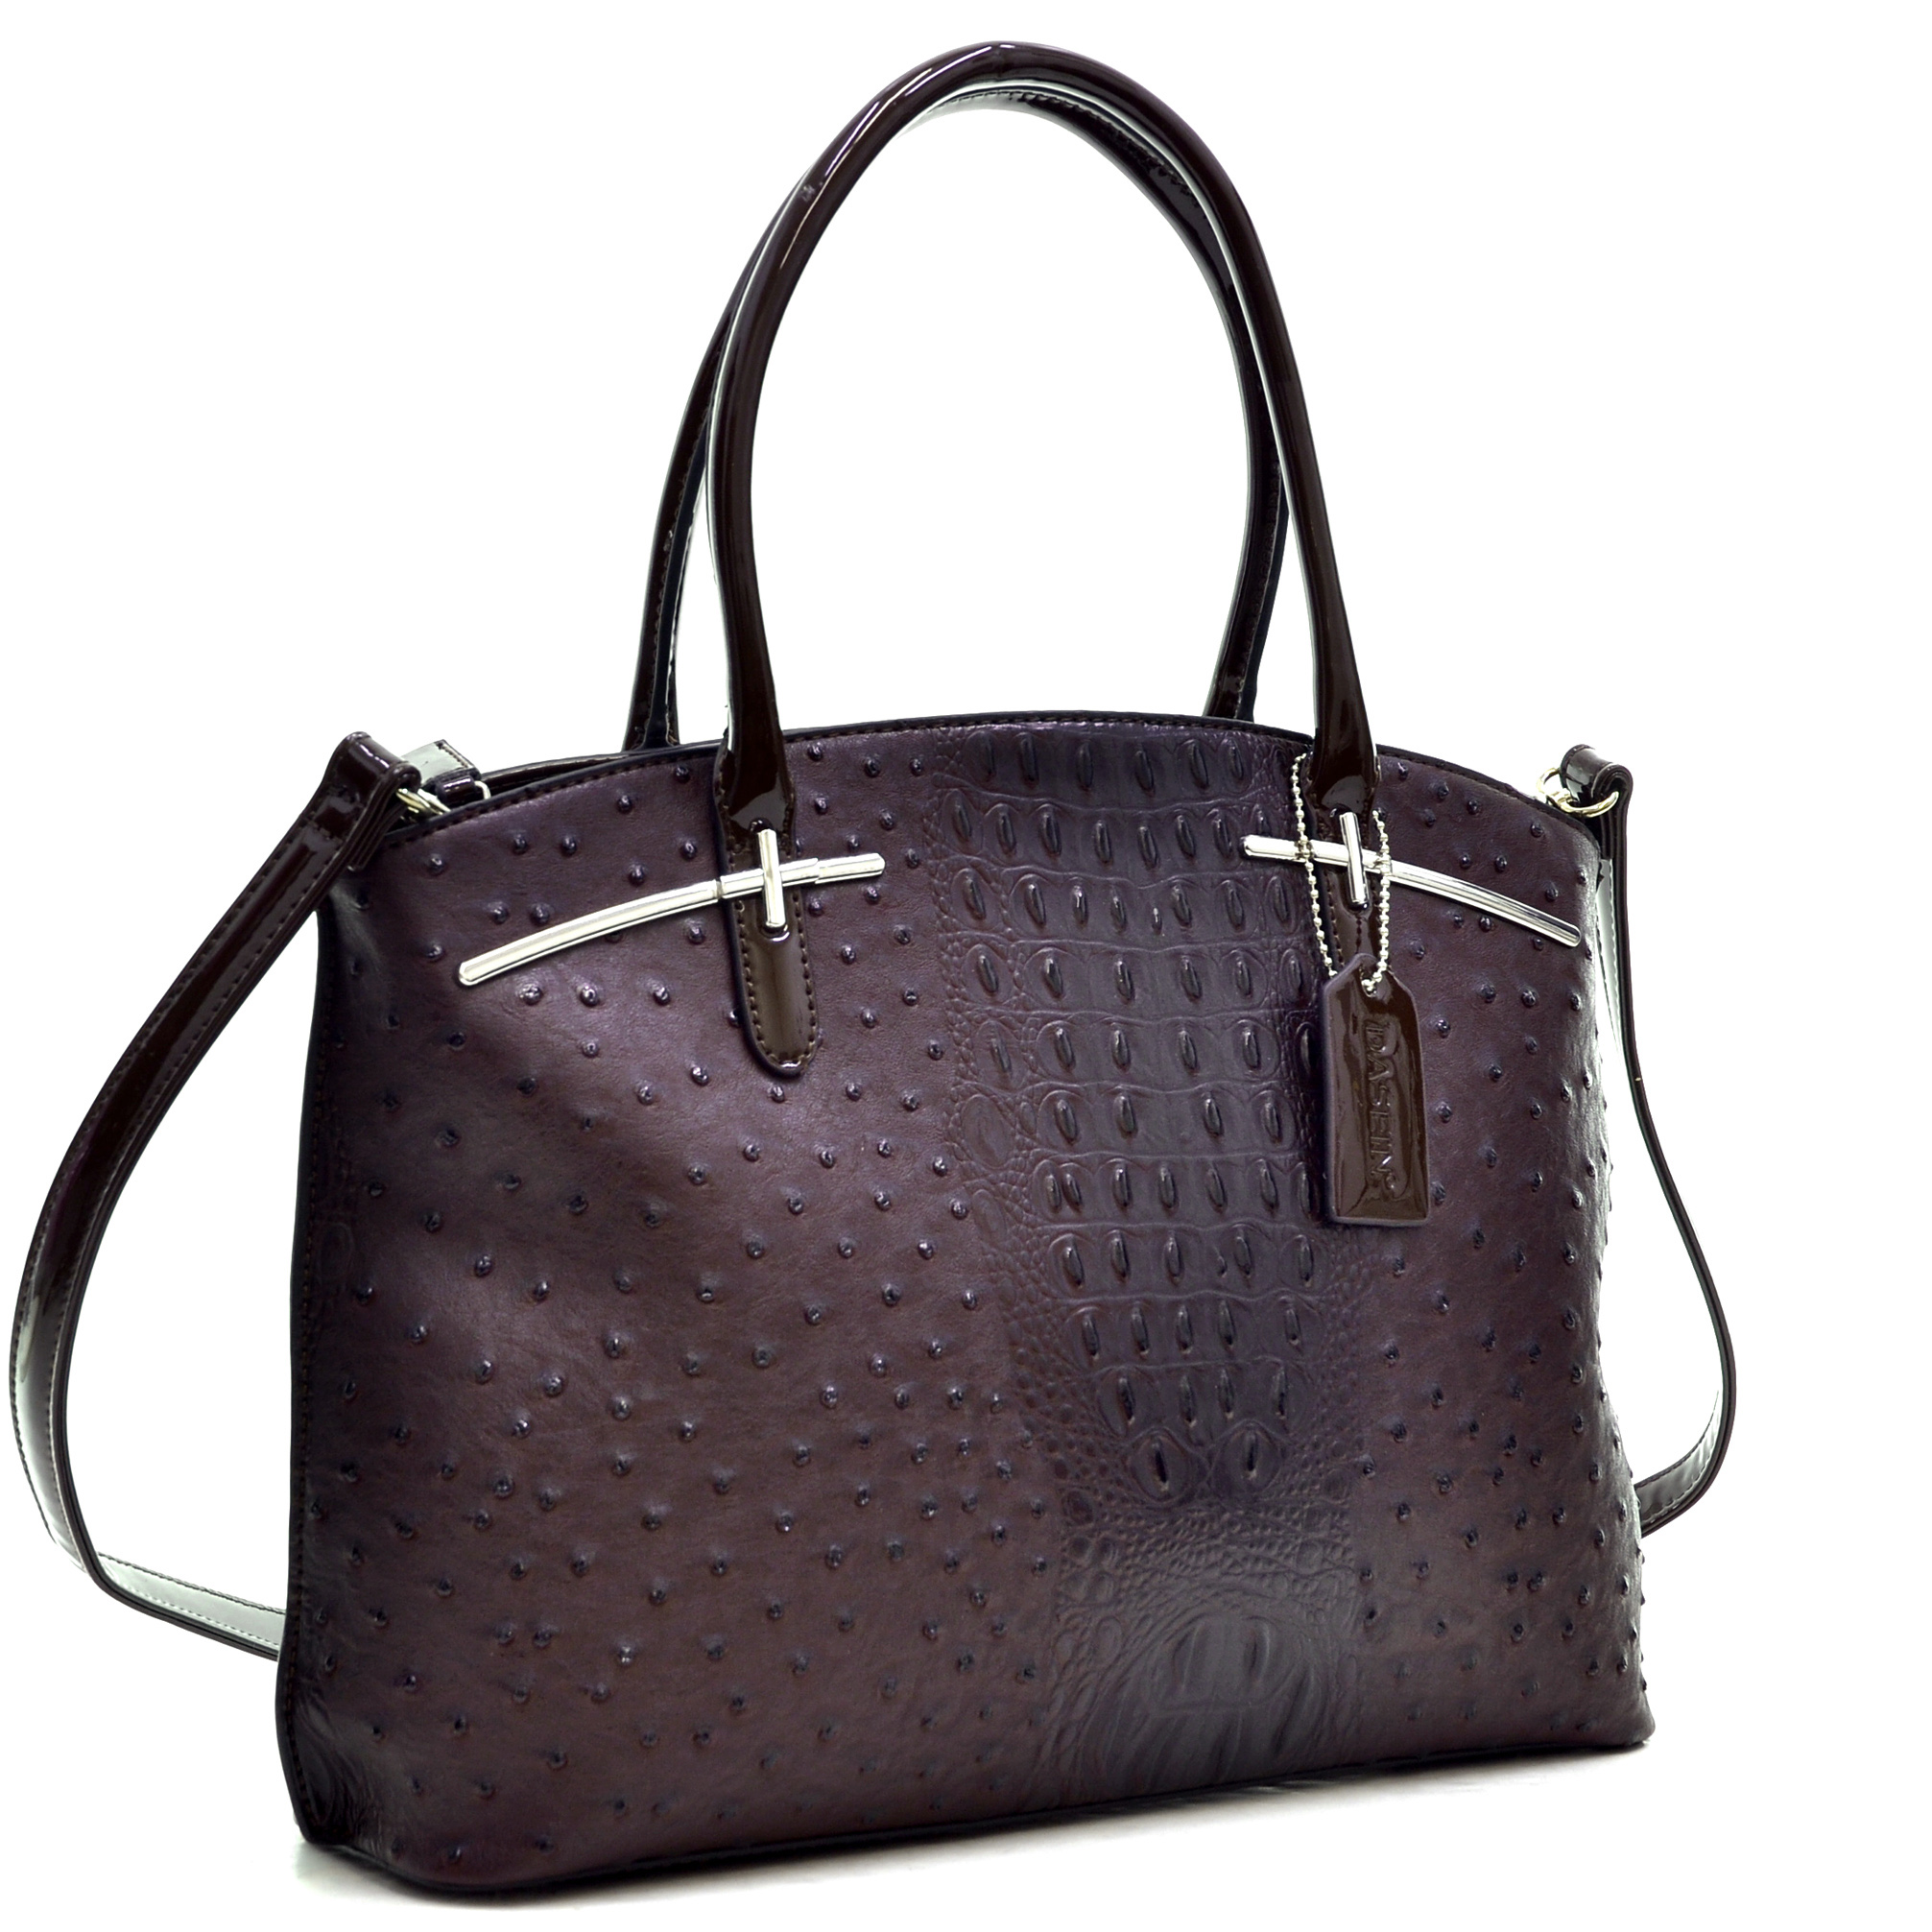 Dasein® Ostrich Faux Leather with Patent Leather Trim Satchel